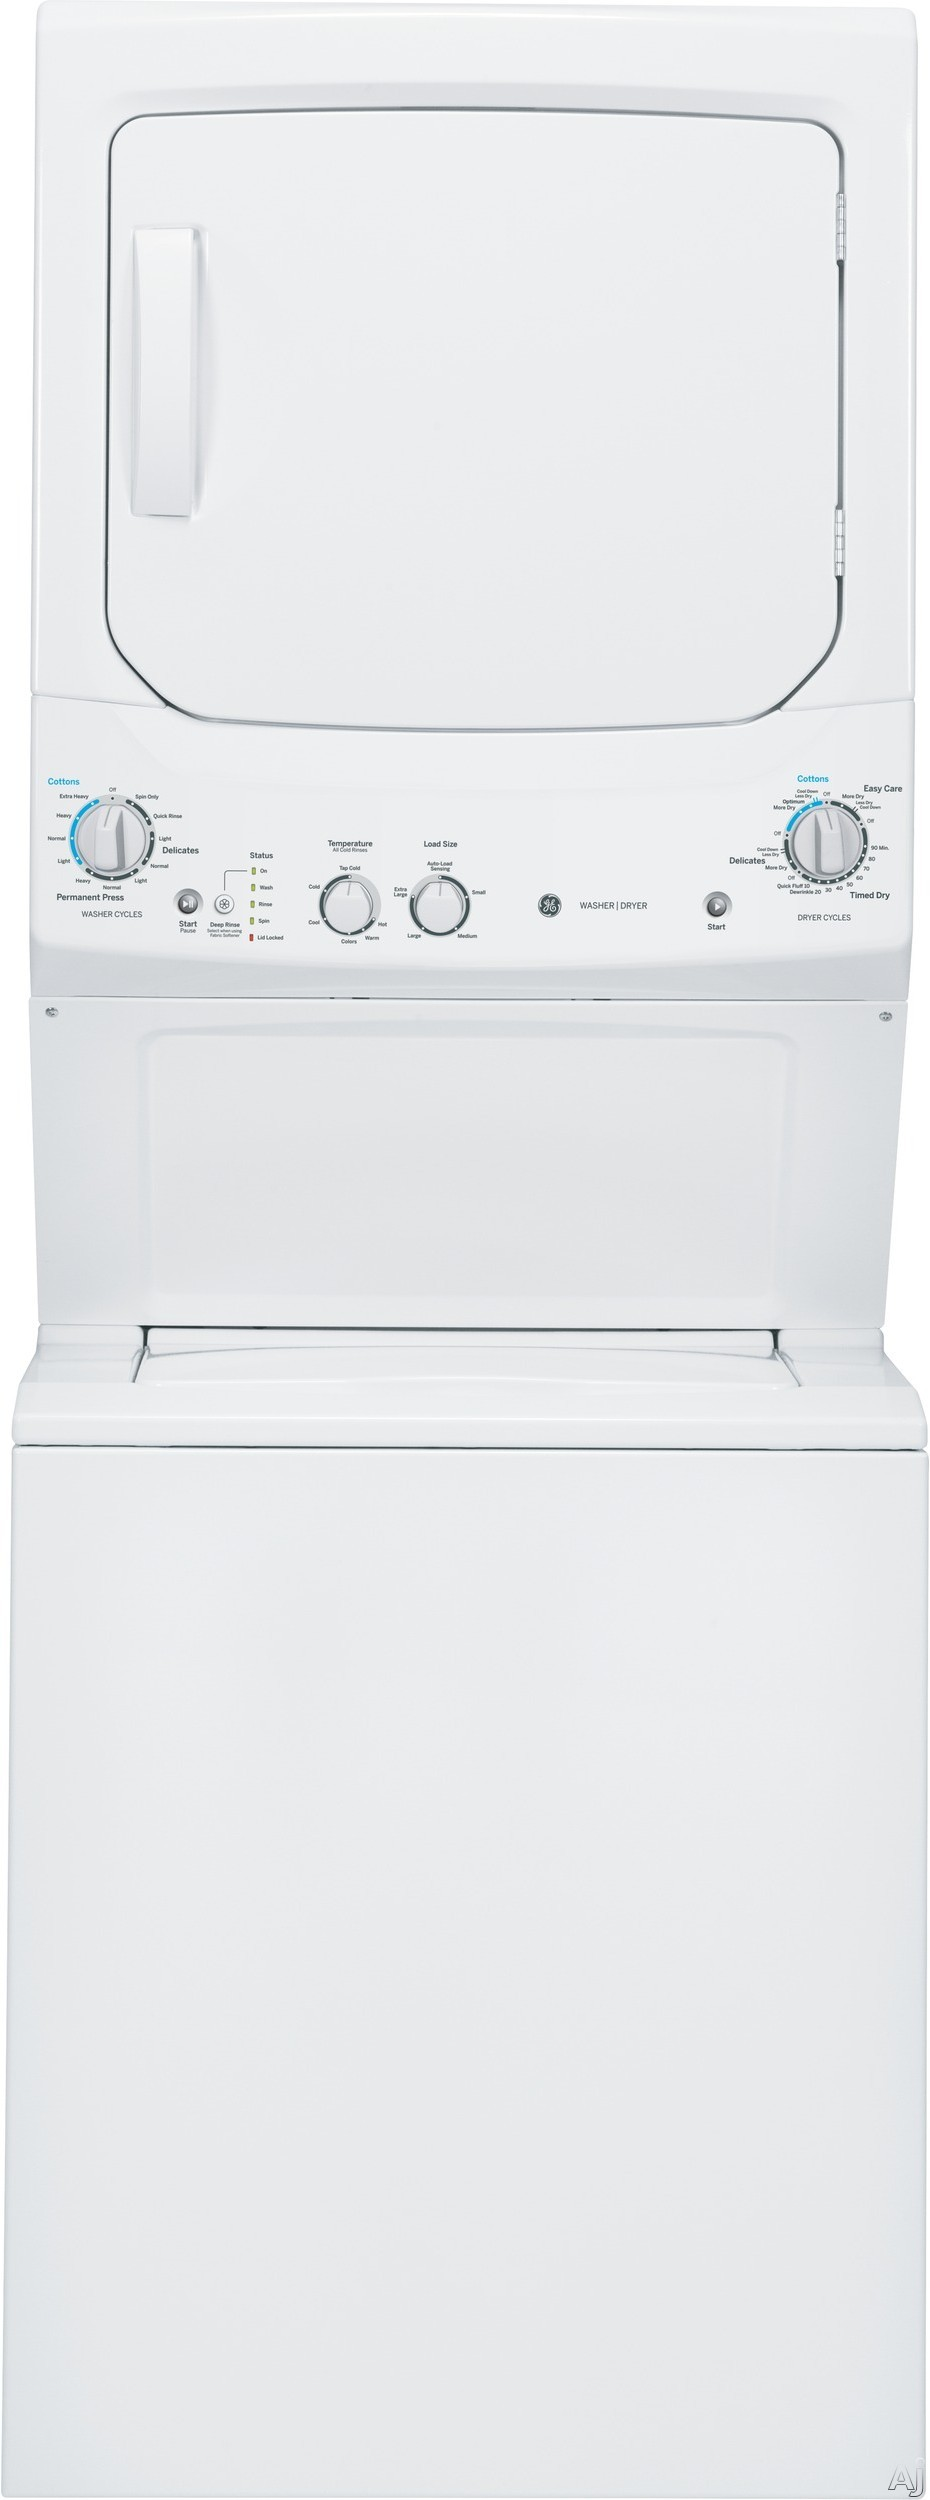 """Picture of 27"""" Electric Laundry Center with 3.2 Cu. Ft. Washer and 5.9 Cu. Ft. DryerJust under 27 inches wide and 76 inches high, this electric laundry center by GE saves a lot on space, but definitely not on performance. Perfect for a closet or a bathroom alcove, this washer and dryer tower is easy to use with rotary mechanical knobs.The washer features 11 different cycles to handle all types of wash loads"""